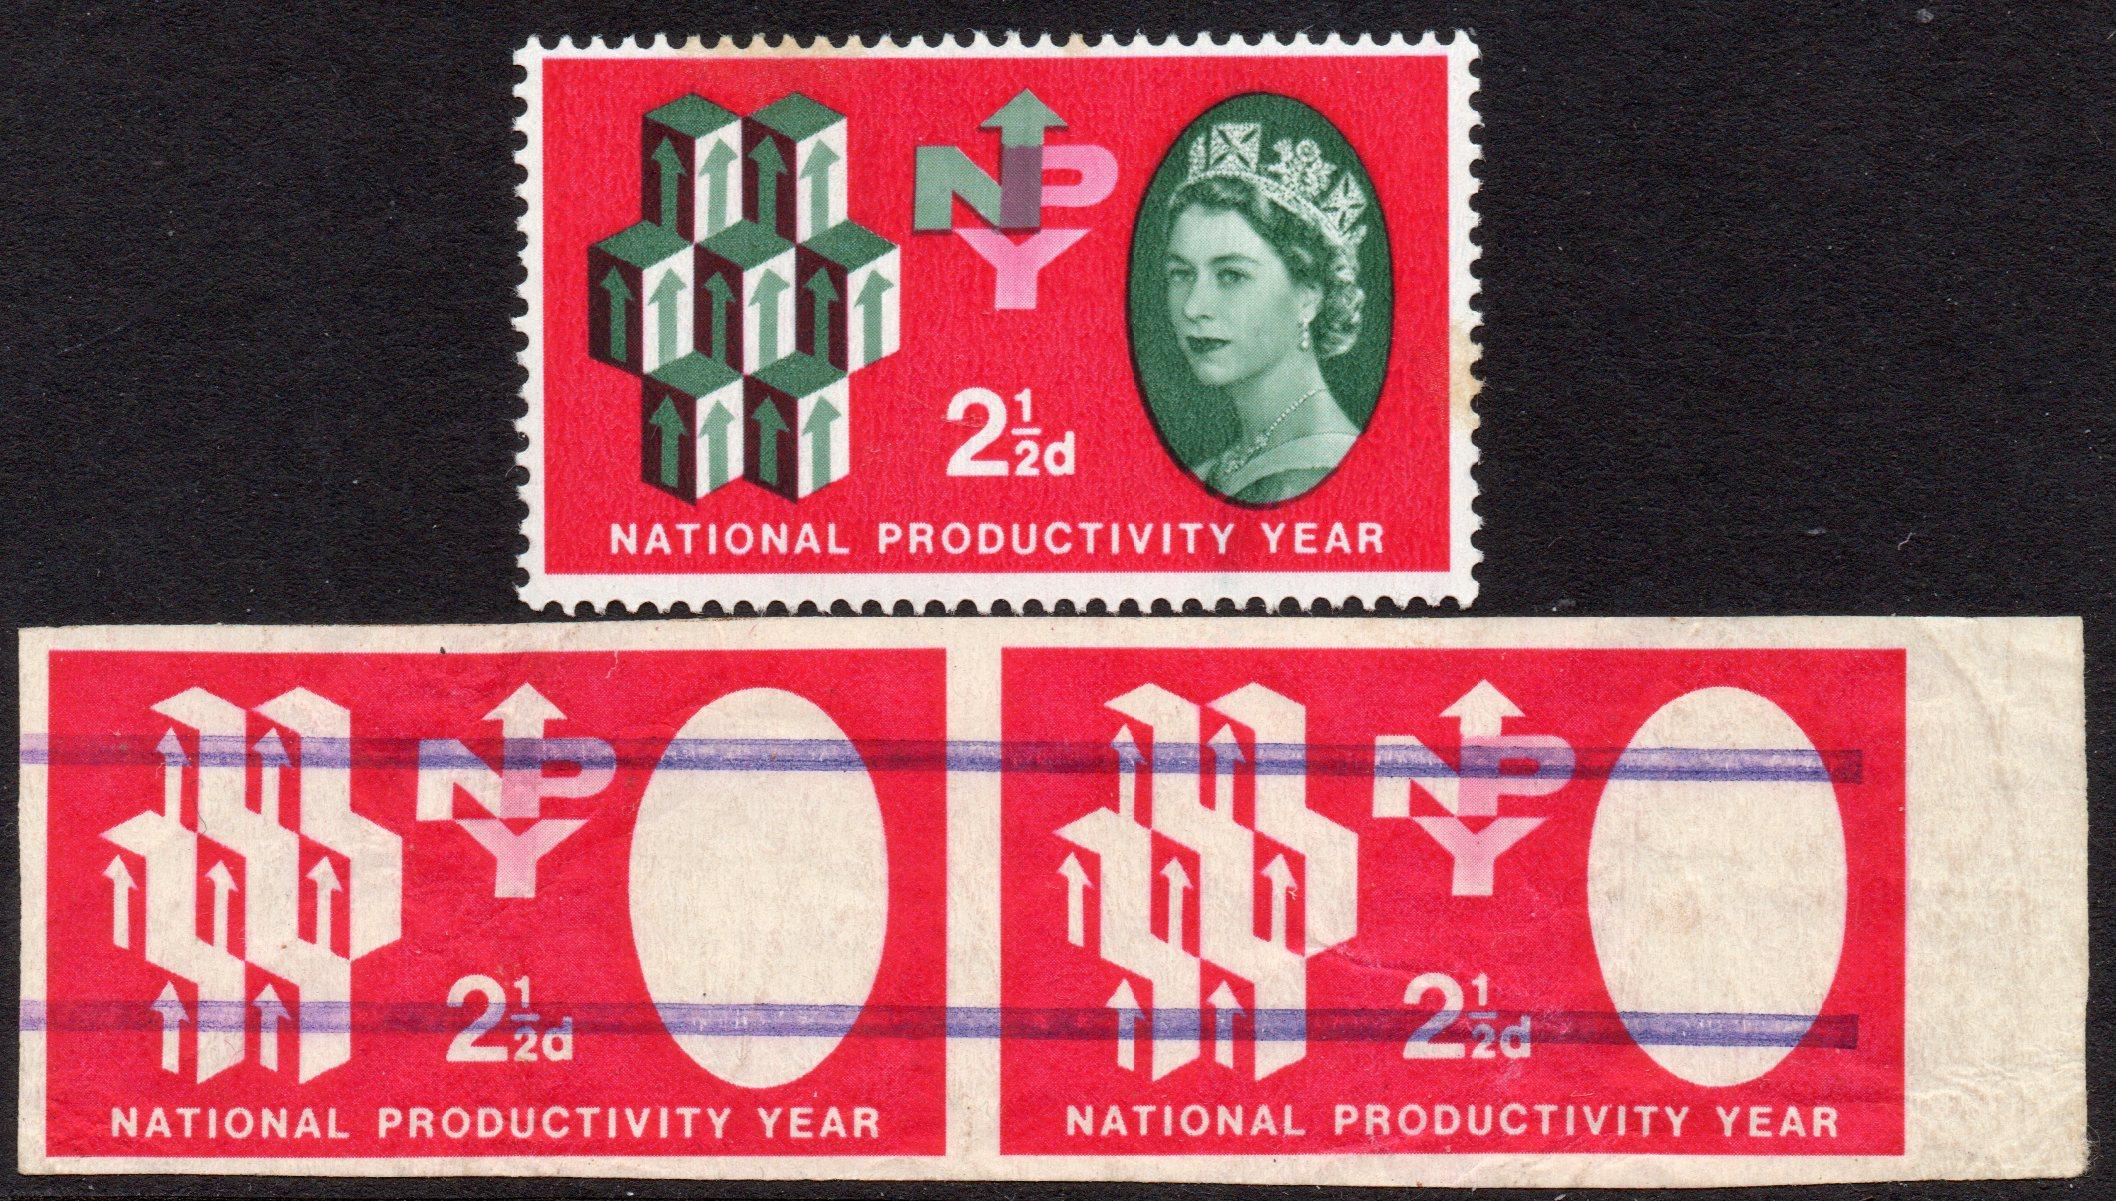 1962 NPY 2½d IMPERFORATE MARGINAL HORIZONTAL PAIR WITH MISSING GREEN C/W ISSUED STAMP - SOLD